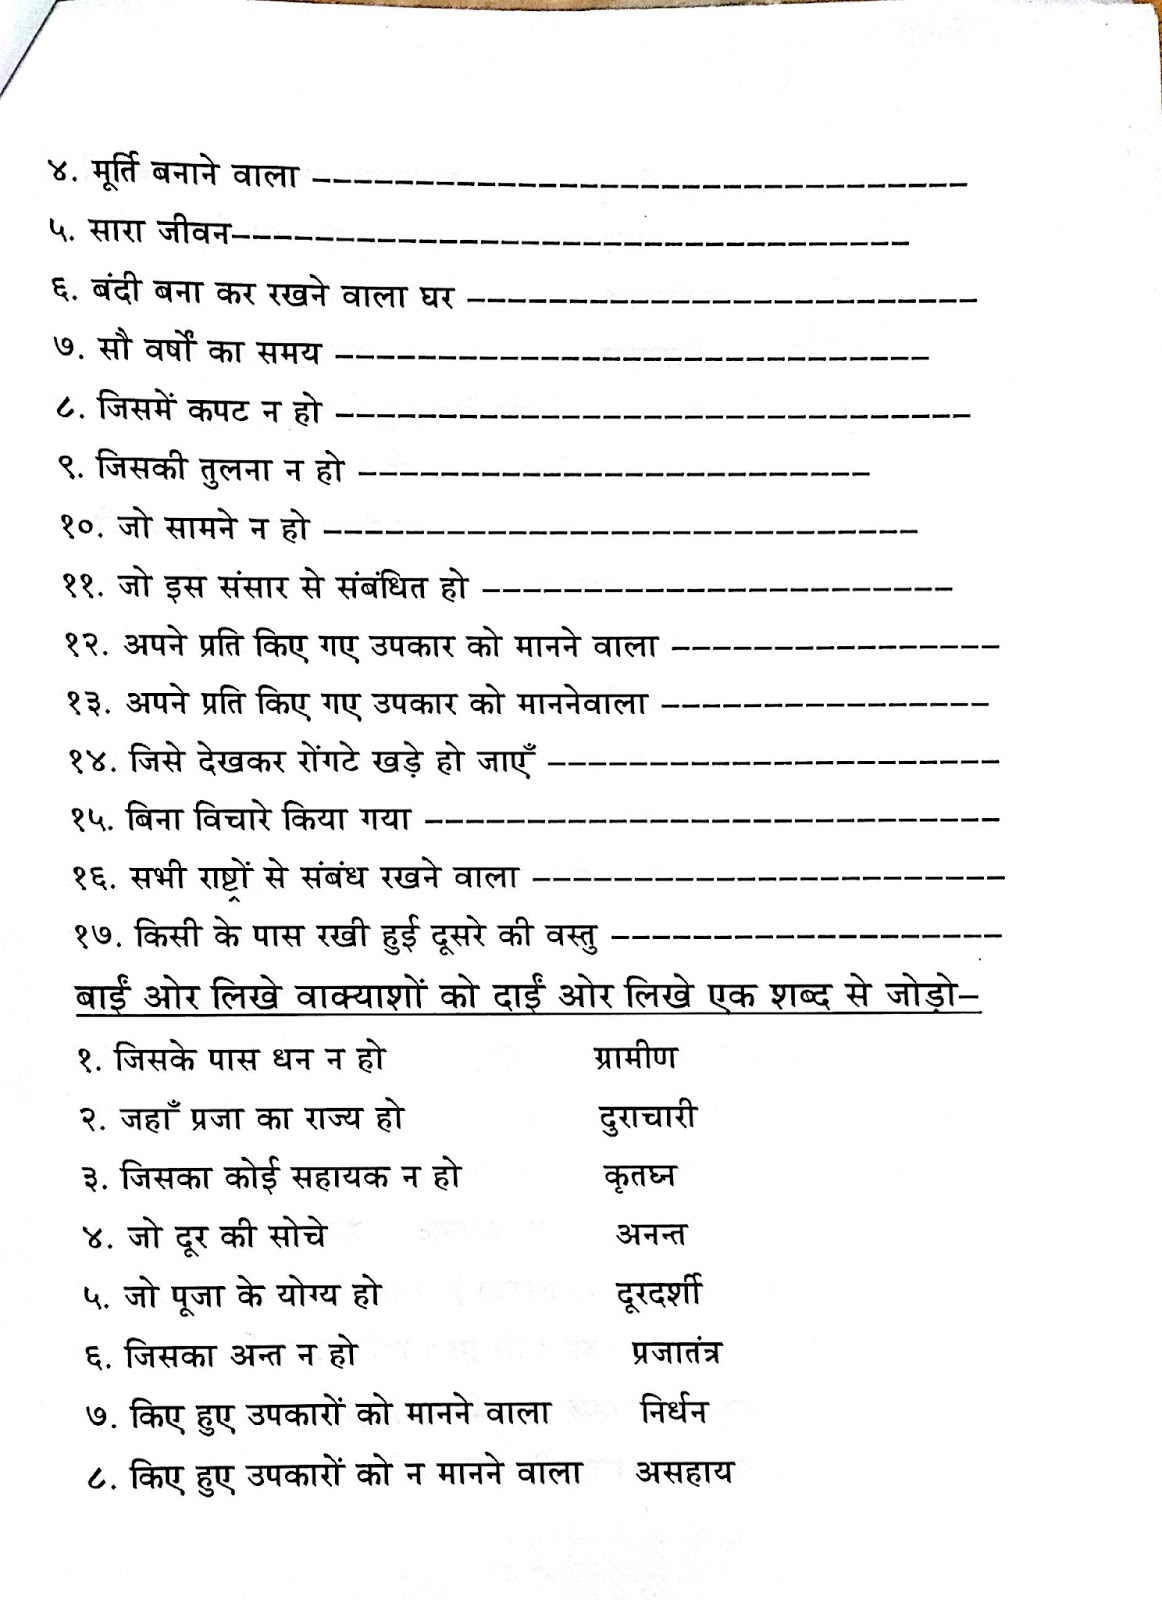 worksheets cbse icse school free grammar for kindergarten sixth grade ...